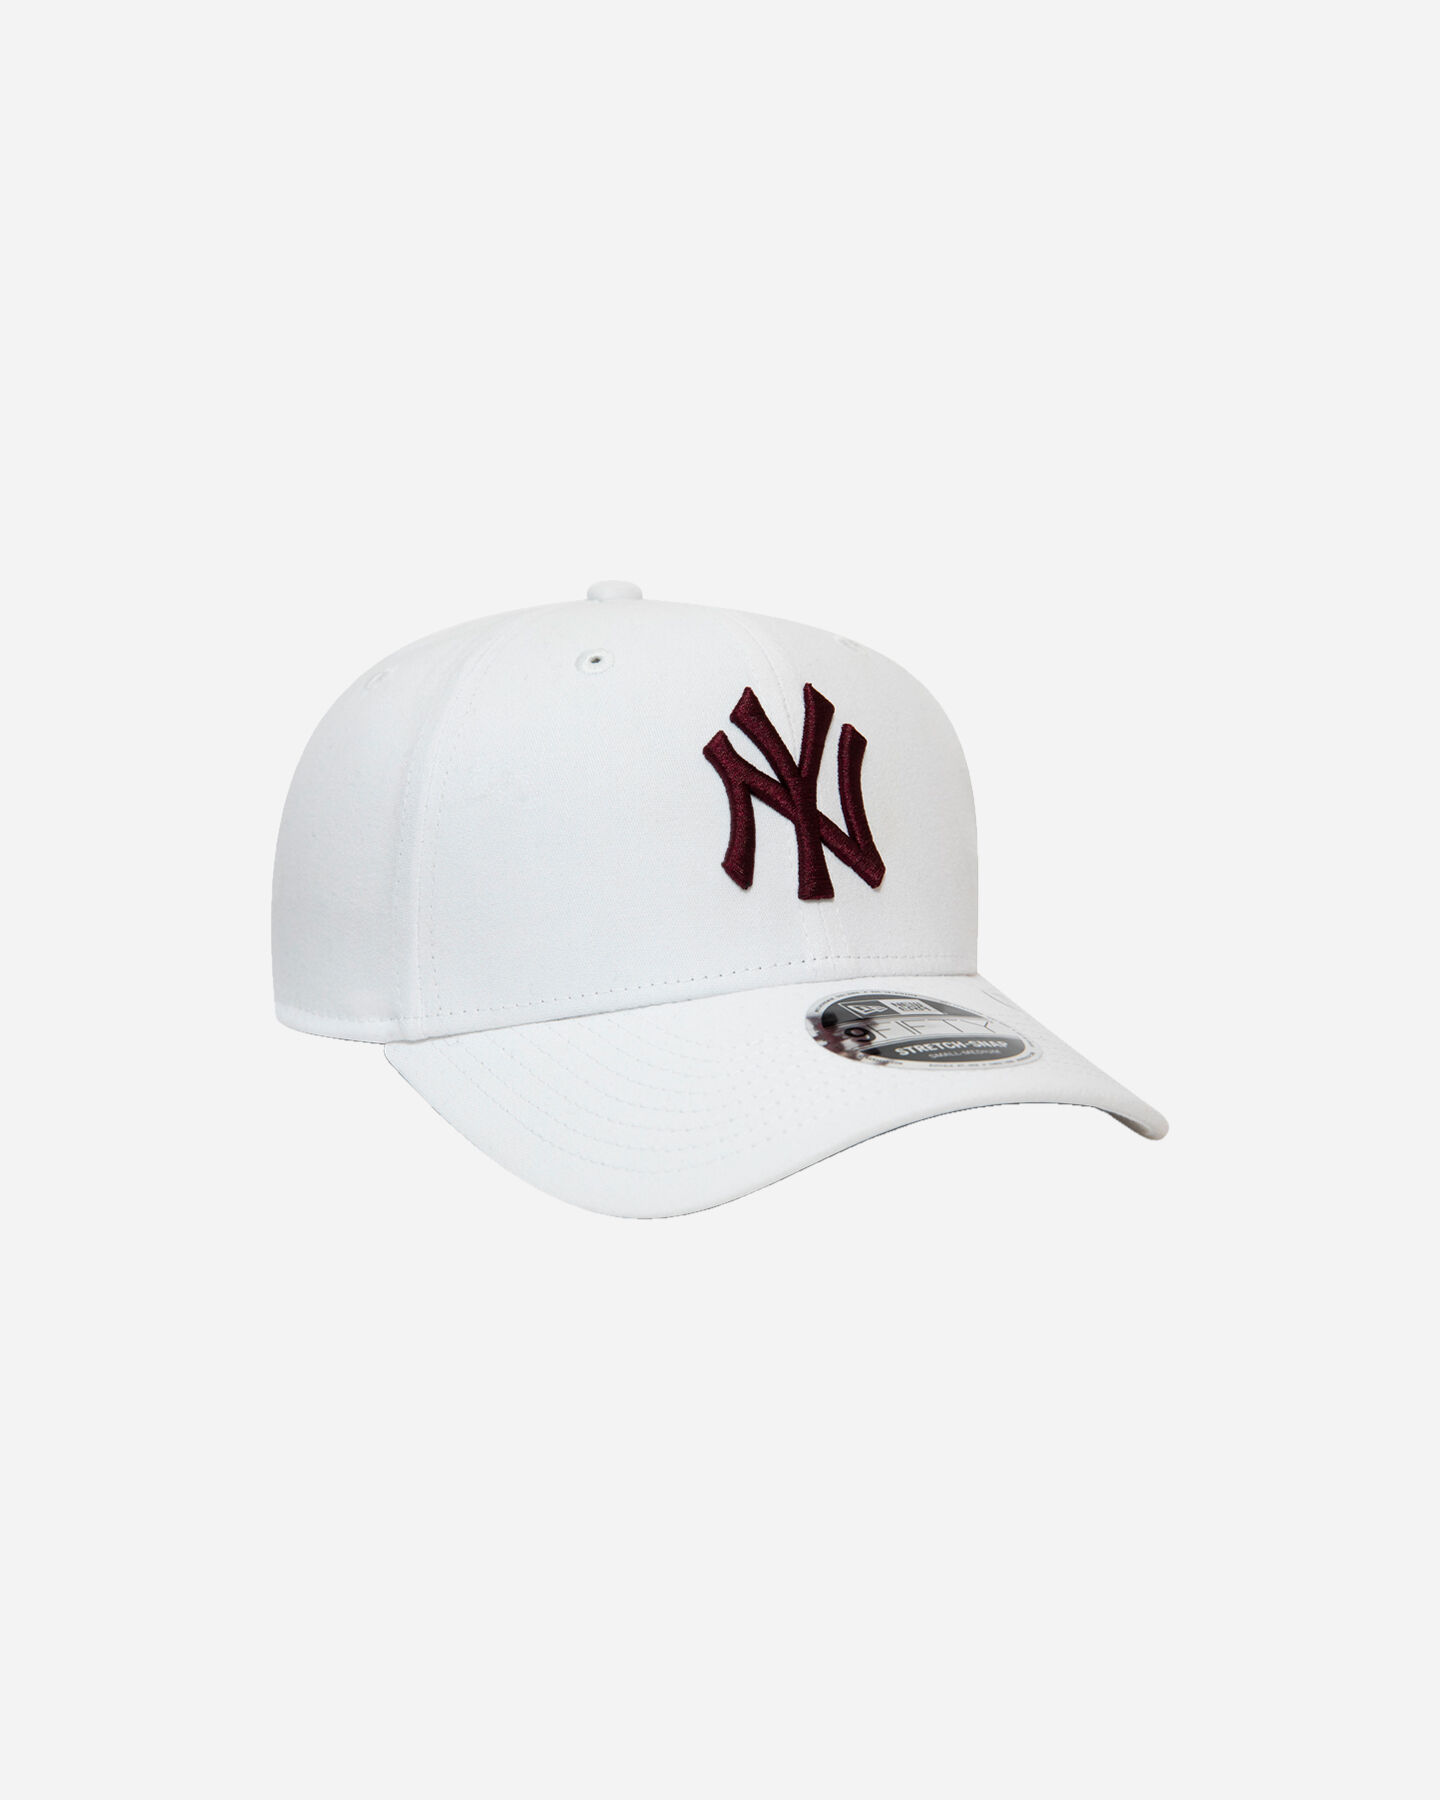 Cappellino NEW ERA NEW YORK YANKEES 9FIFTY STRETCH S5170056 scatto 2